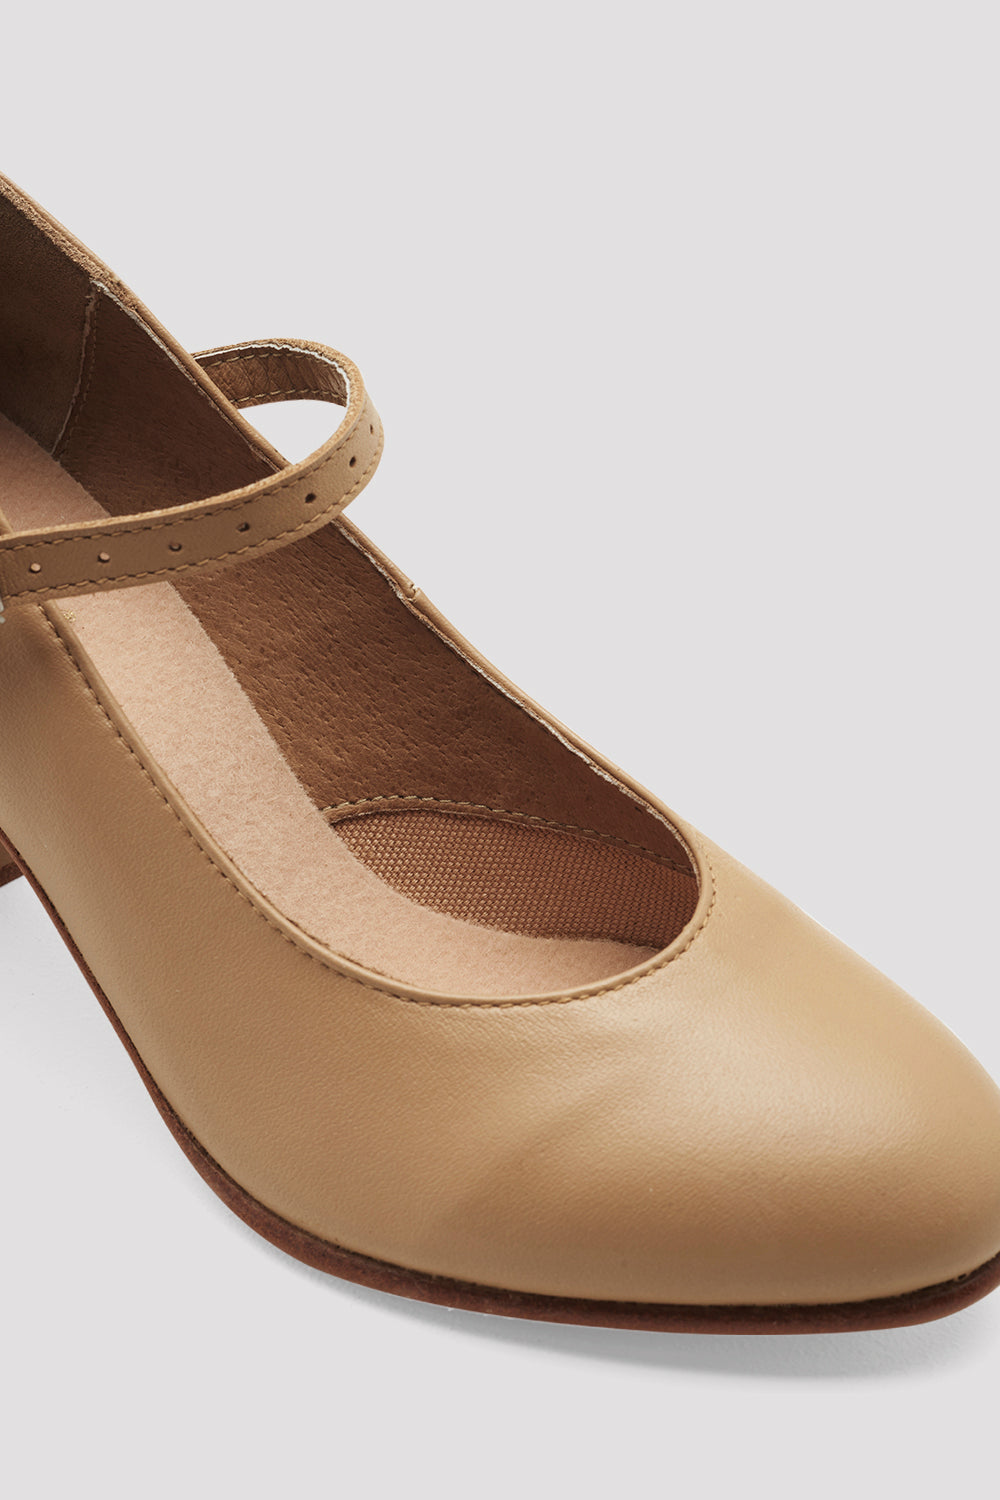 Ladies Cabaret Character Shoes - BLOCH US